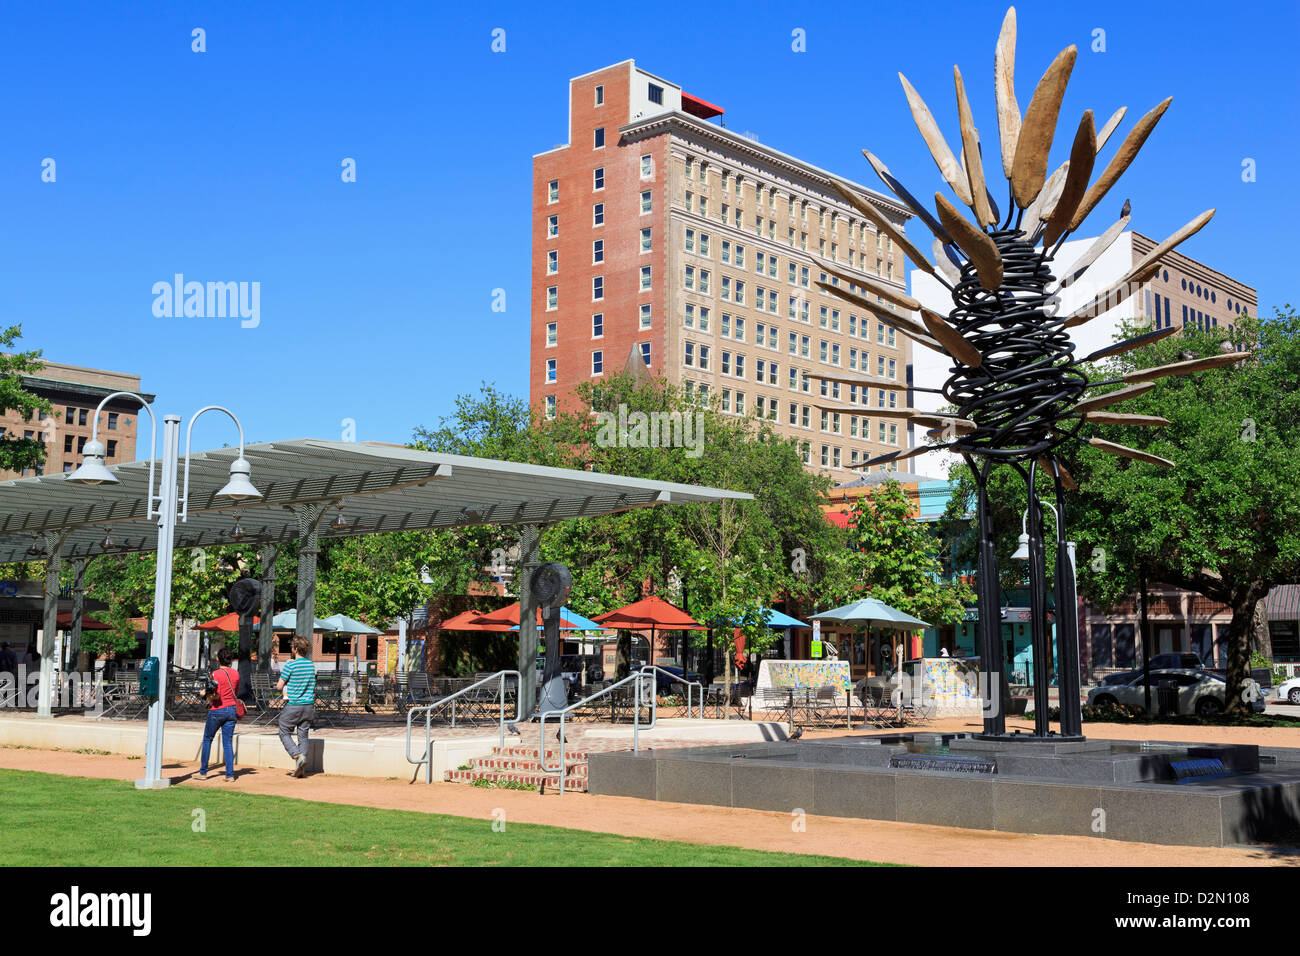 Points of View sculpture by James Surls in Market Square Park, Houston, Texas, United States of America, North America - Stock Image